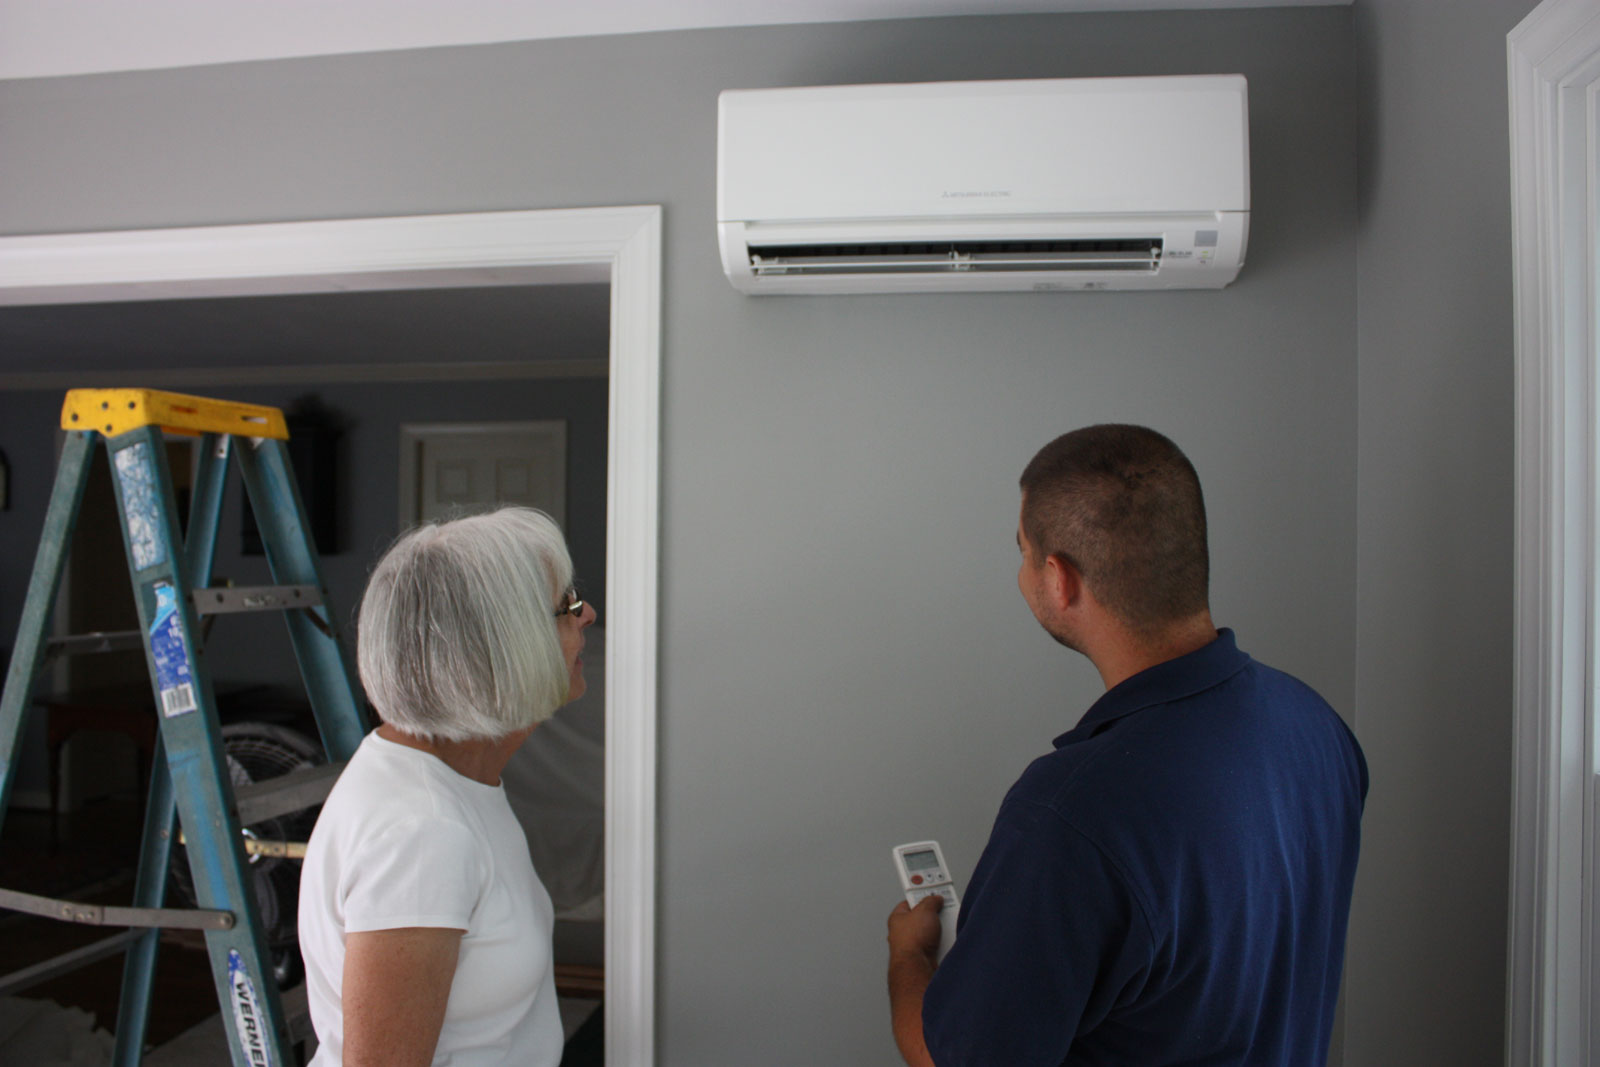 Ductless mini split system being installed by Williamsburg HVAC